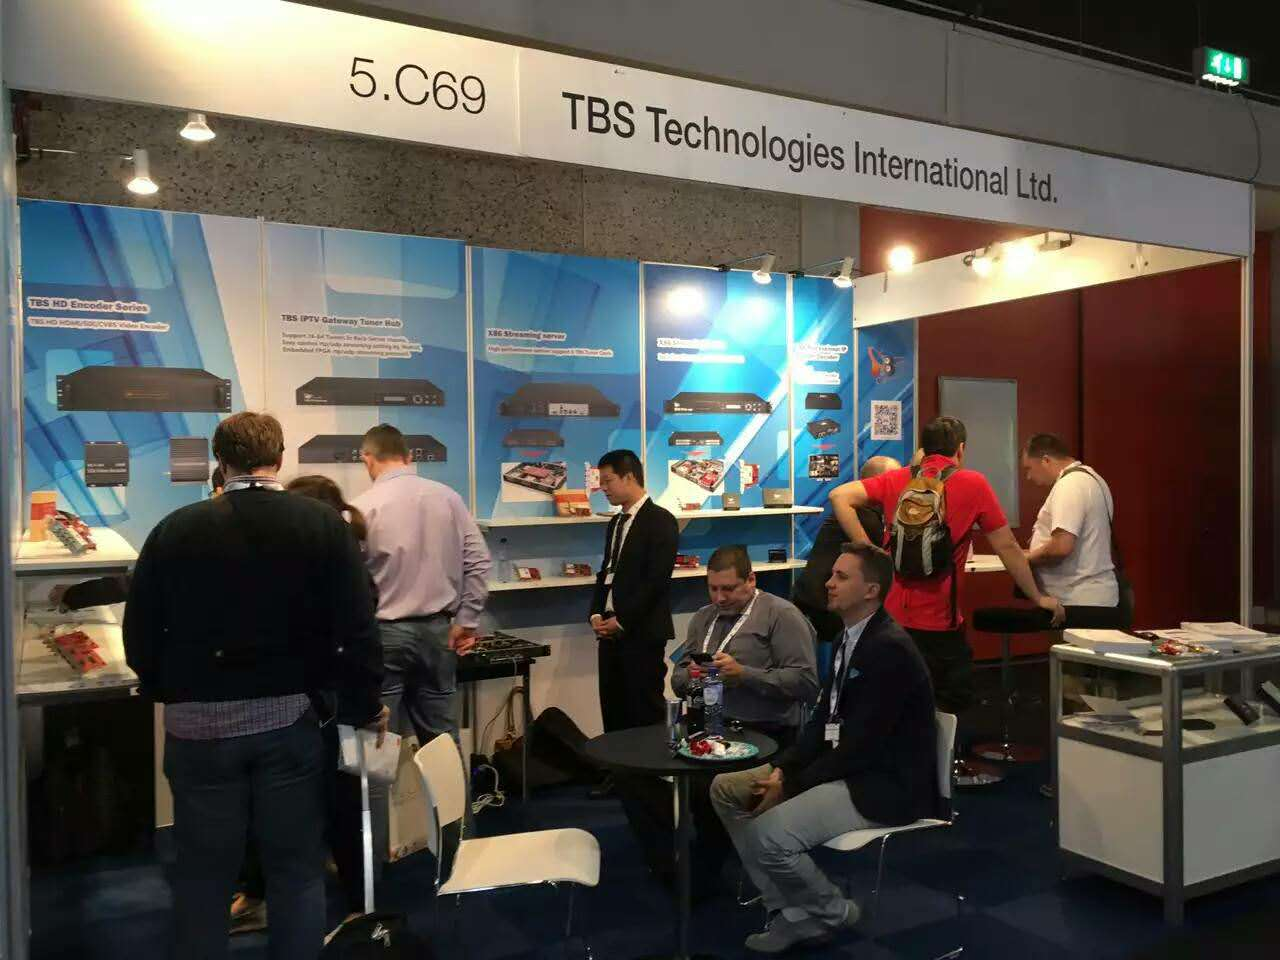 tbsibc-2016-in-amsterdam-5-c69-rai-exhibition-9-13-september-05